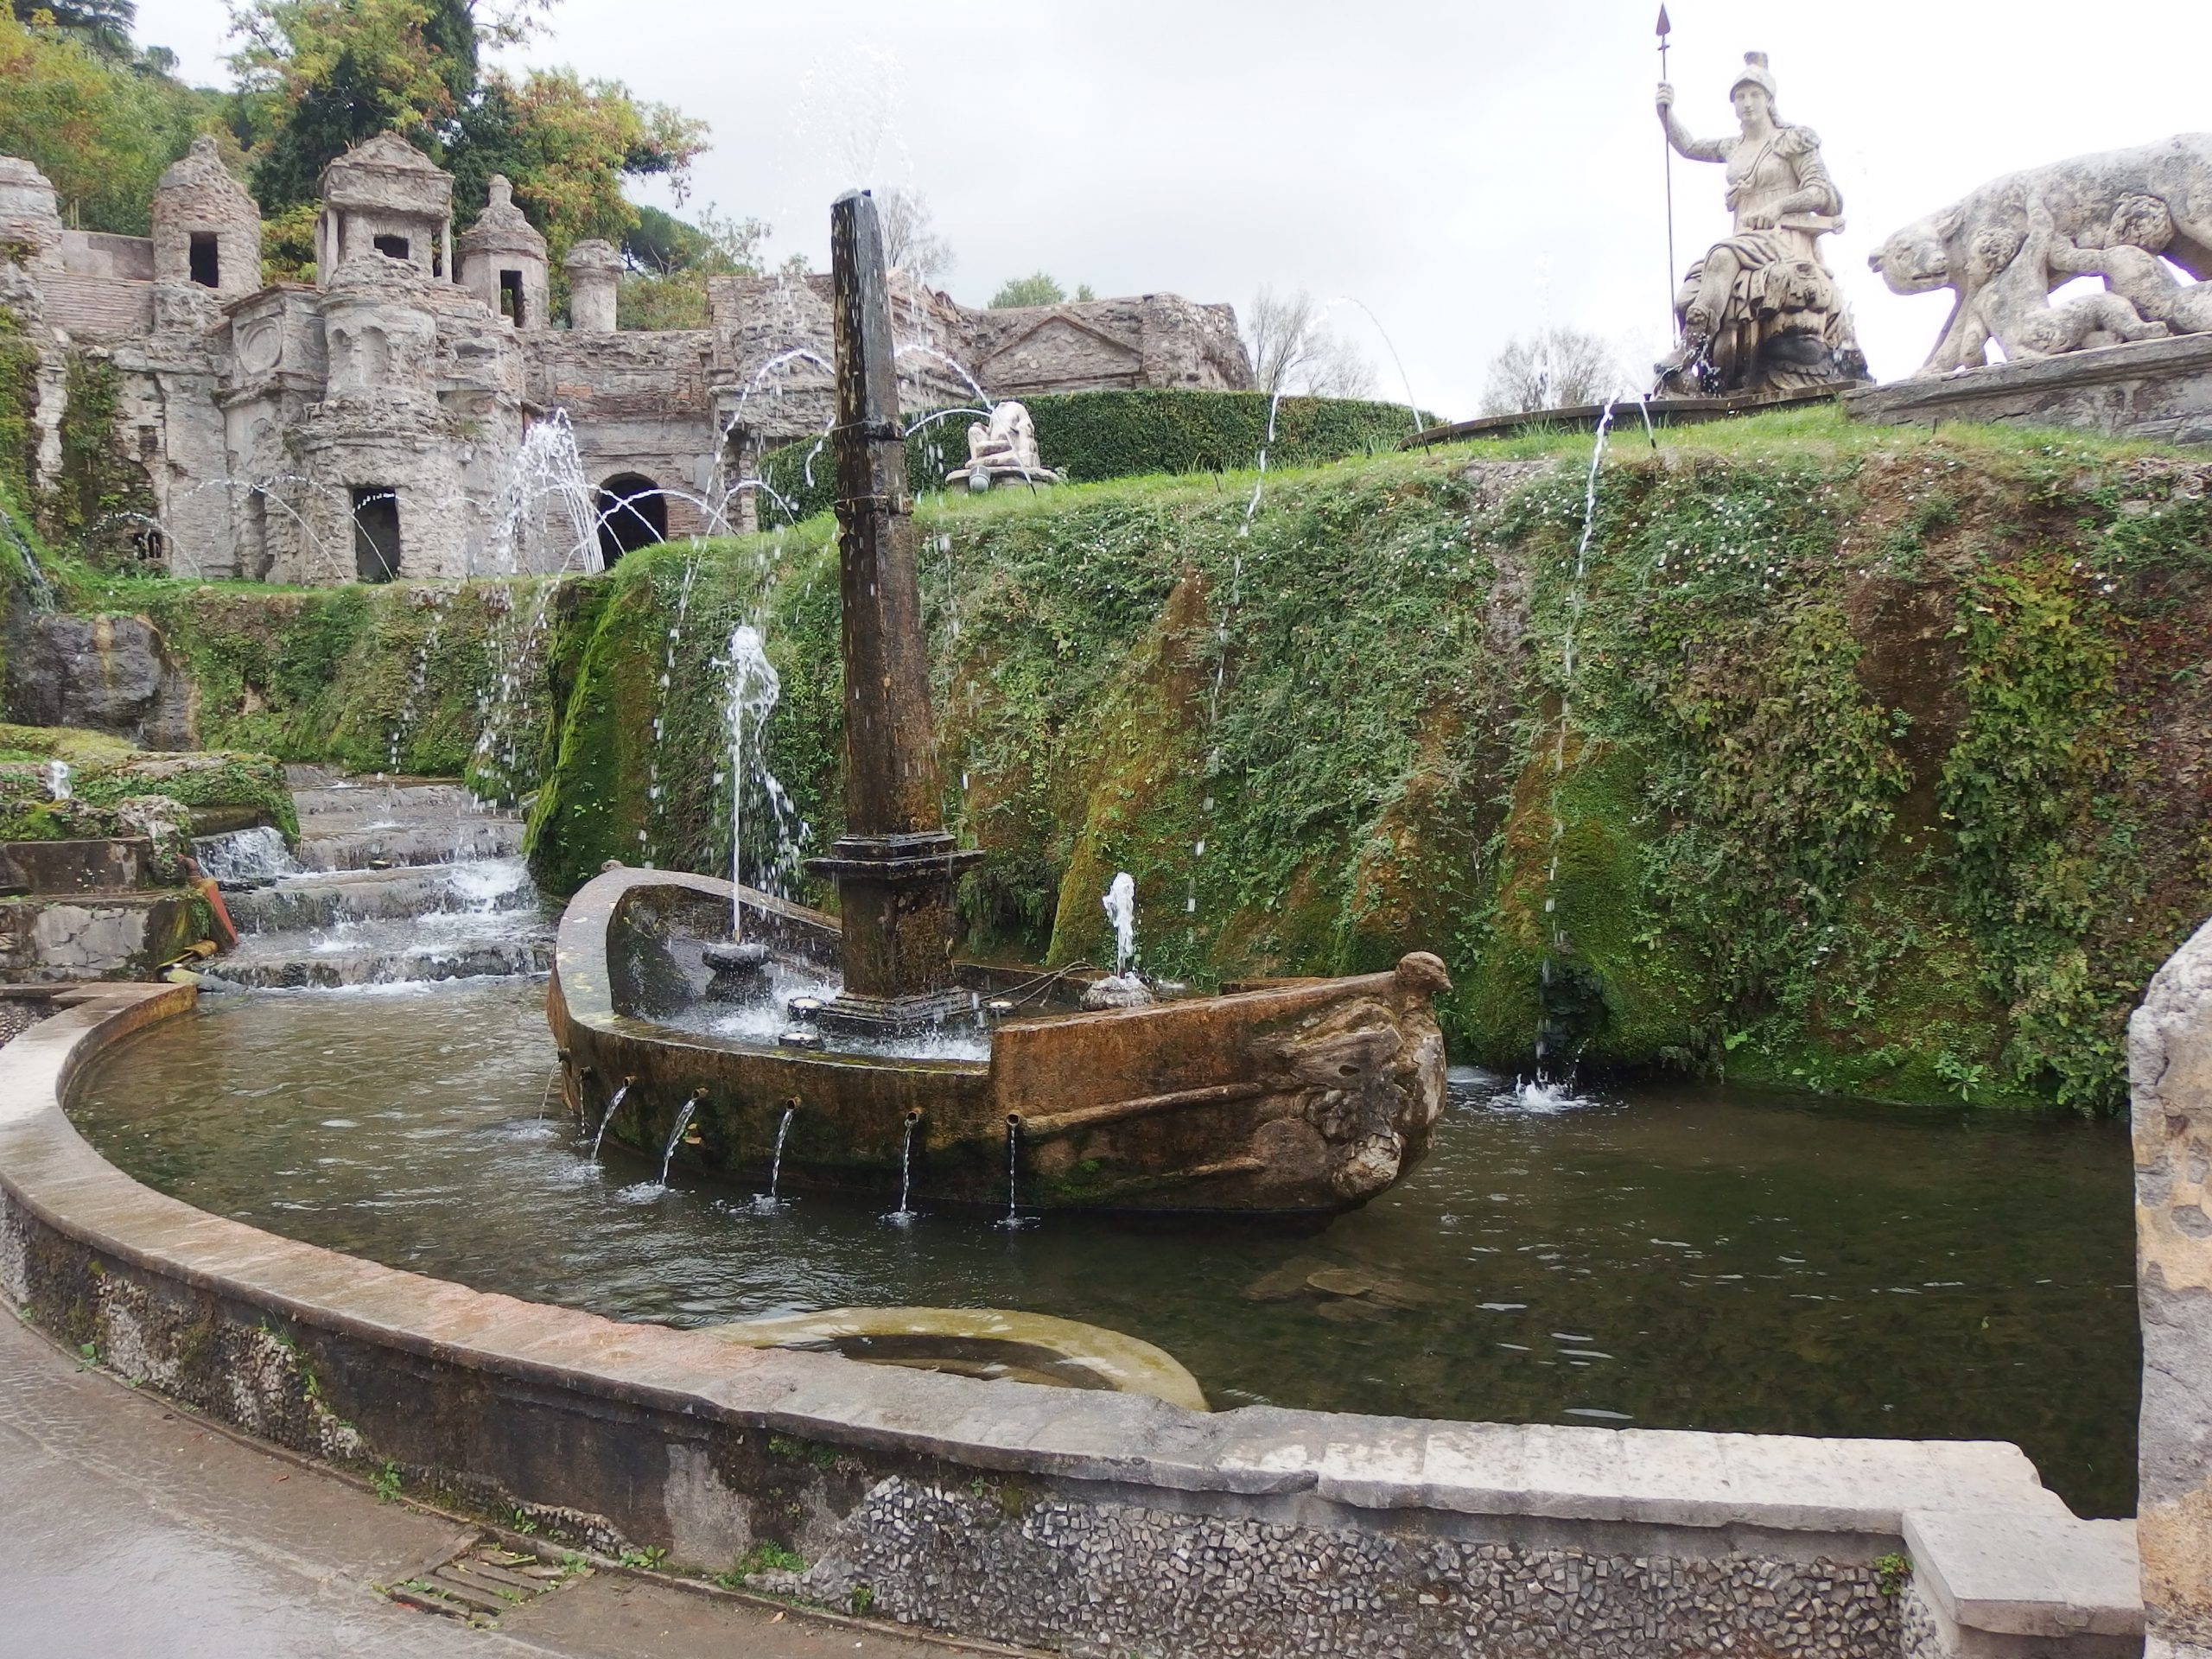 a detail of the fountain symbolizing Rome, the Tiber River, and its island